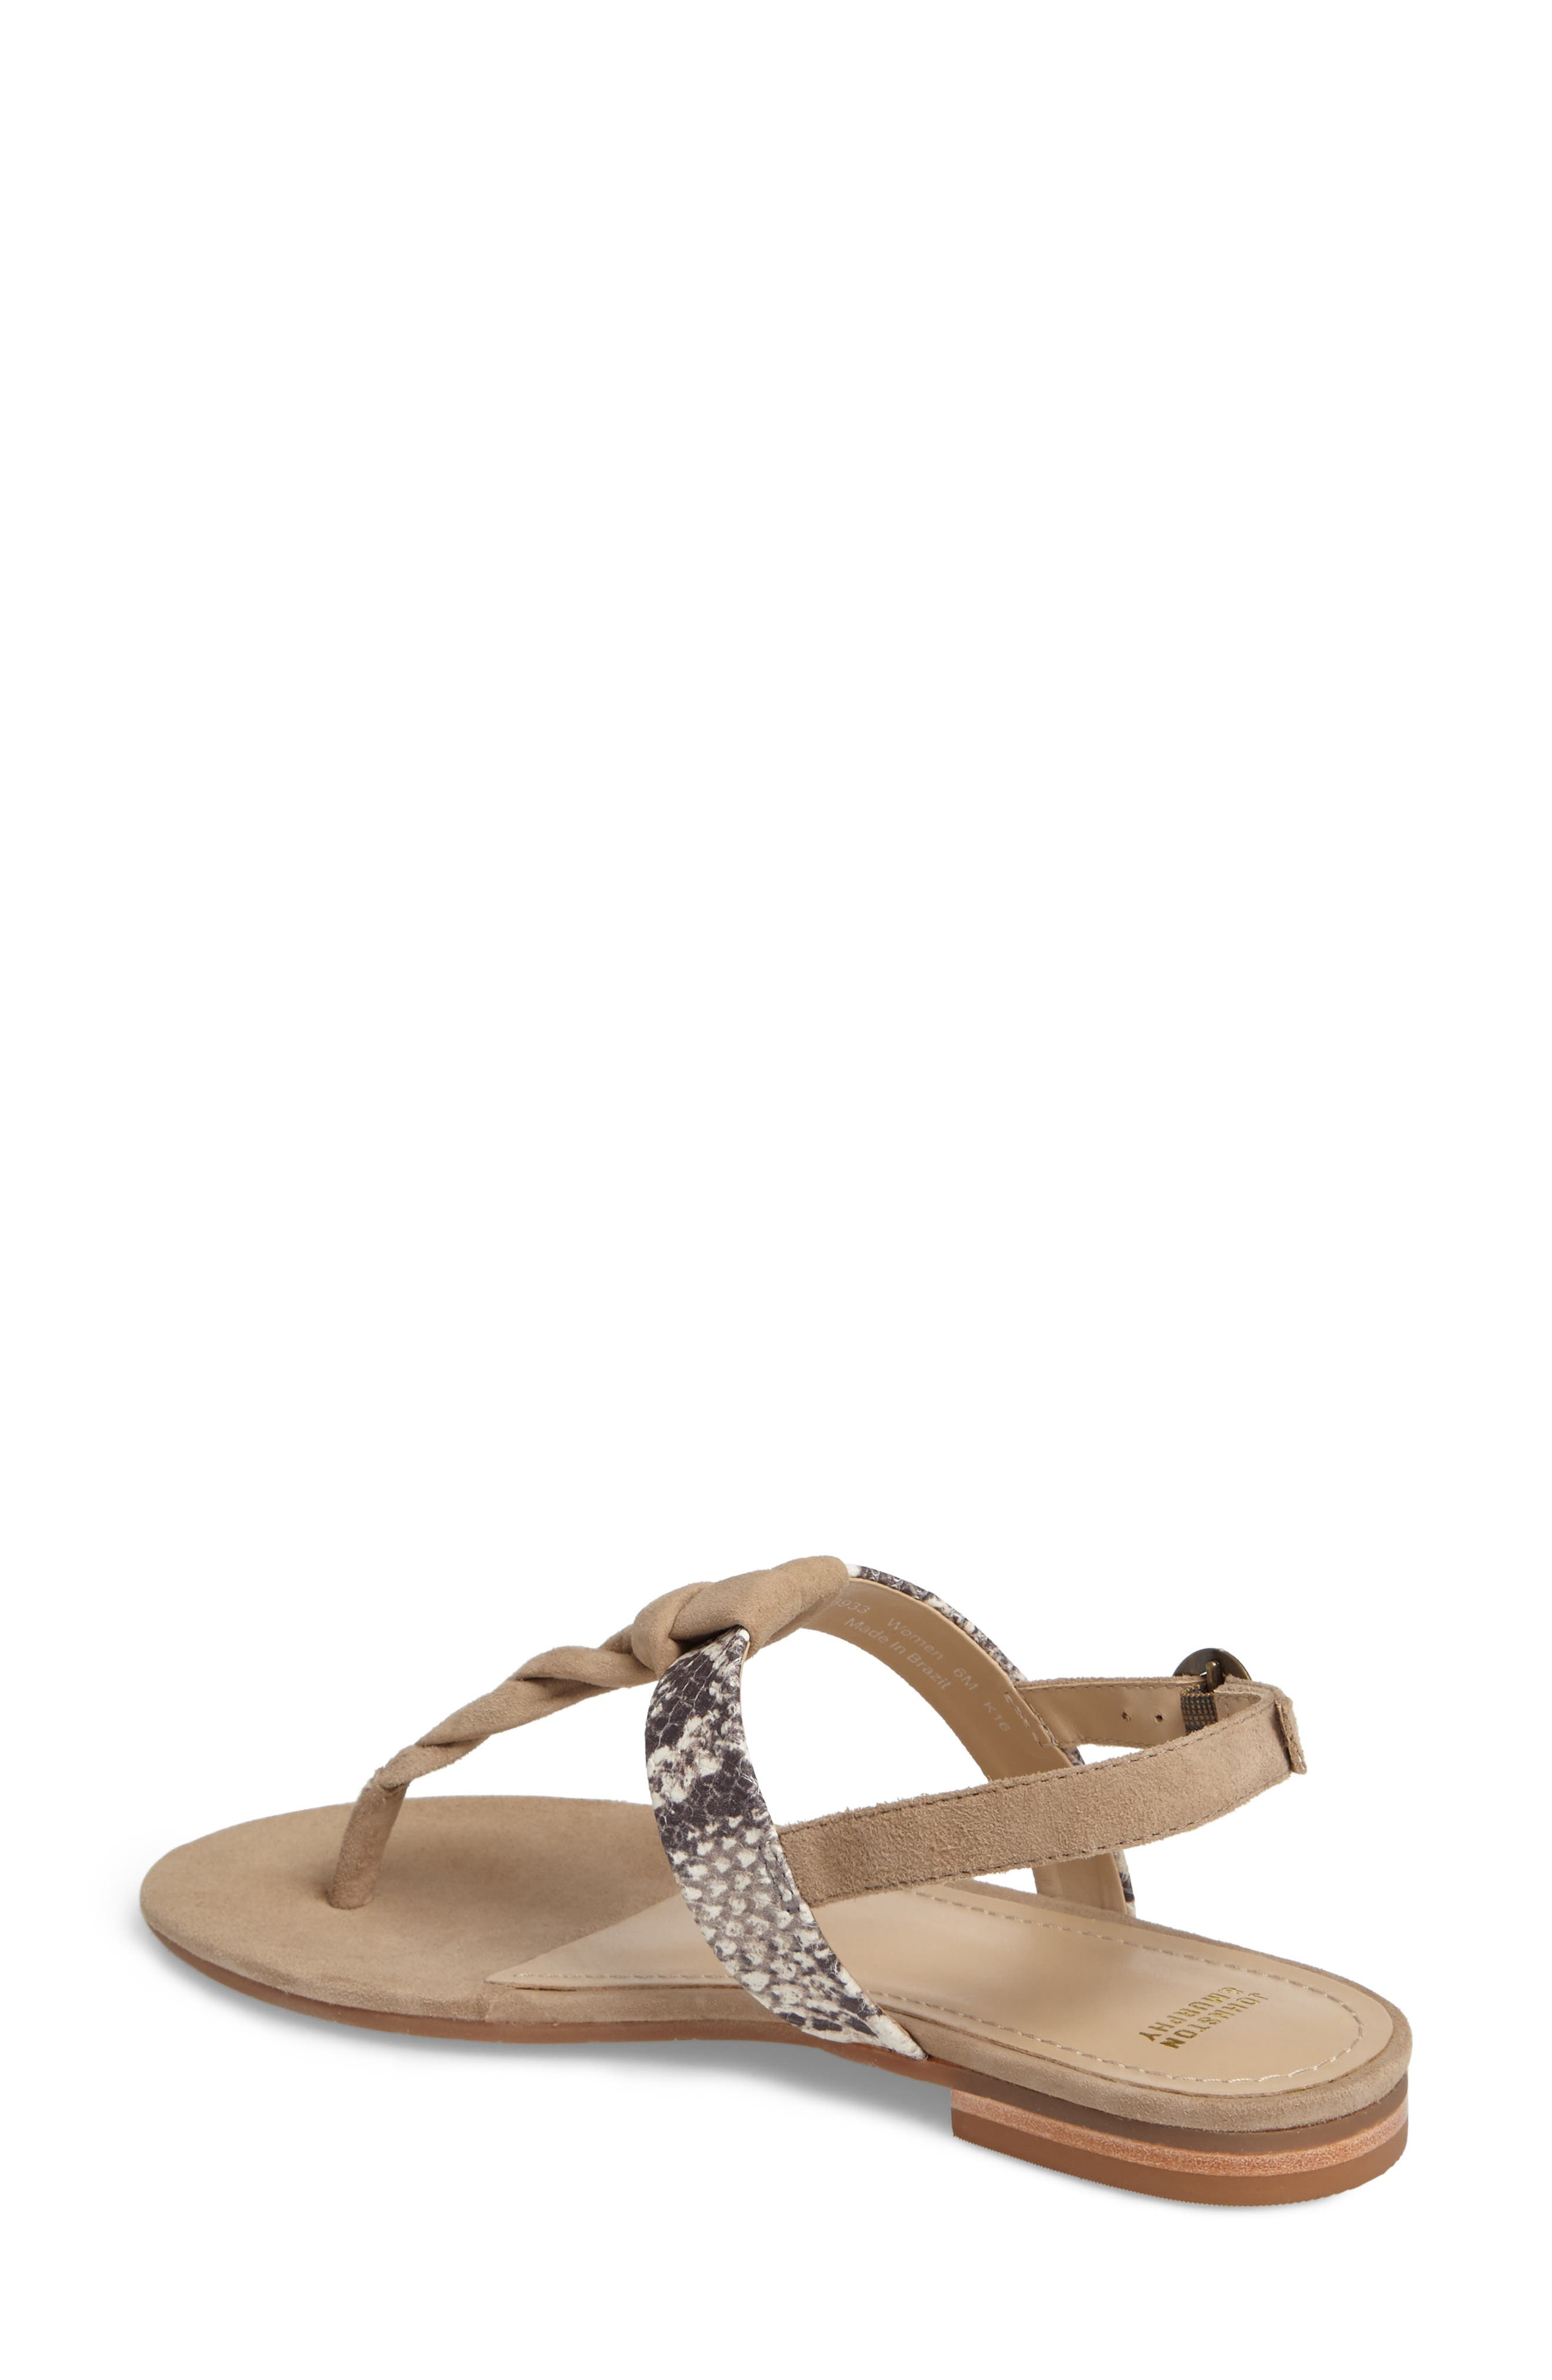 Holly Twisted T-Strap Sandal,                             Alternate thumbnail 8, color,